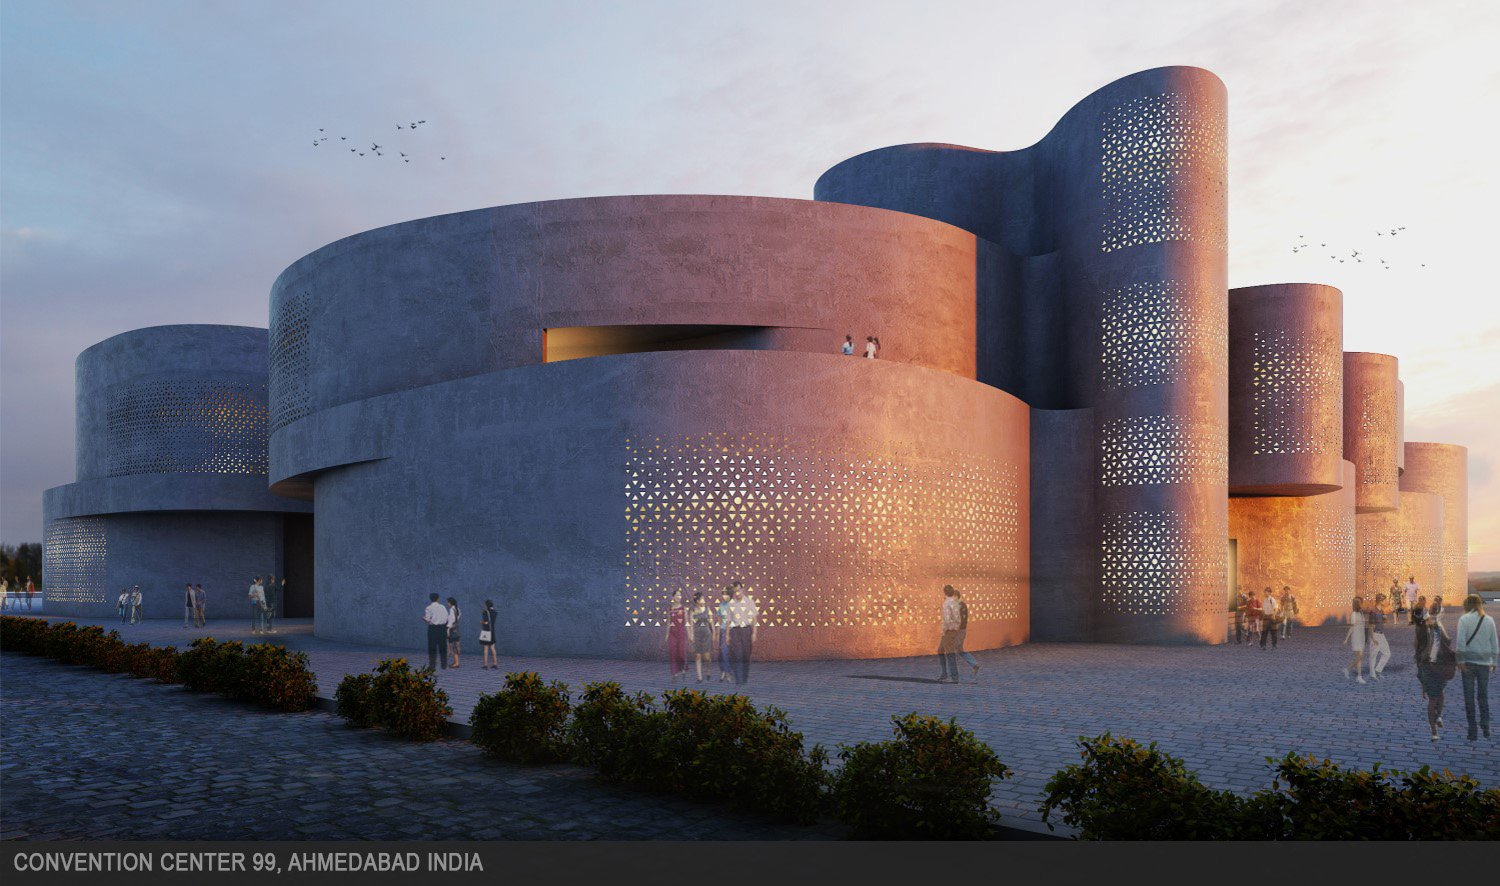 Generous use of perforated walls to allow natural light and ventilation. sanjay puri architects